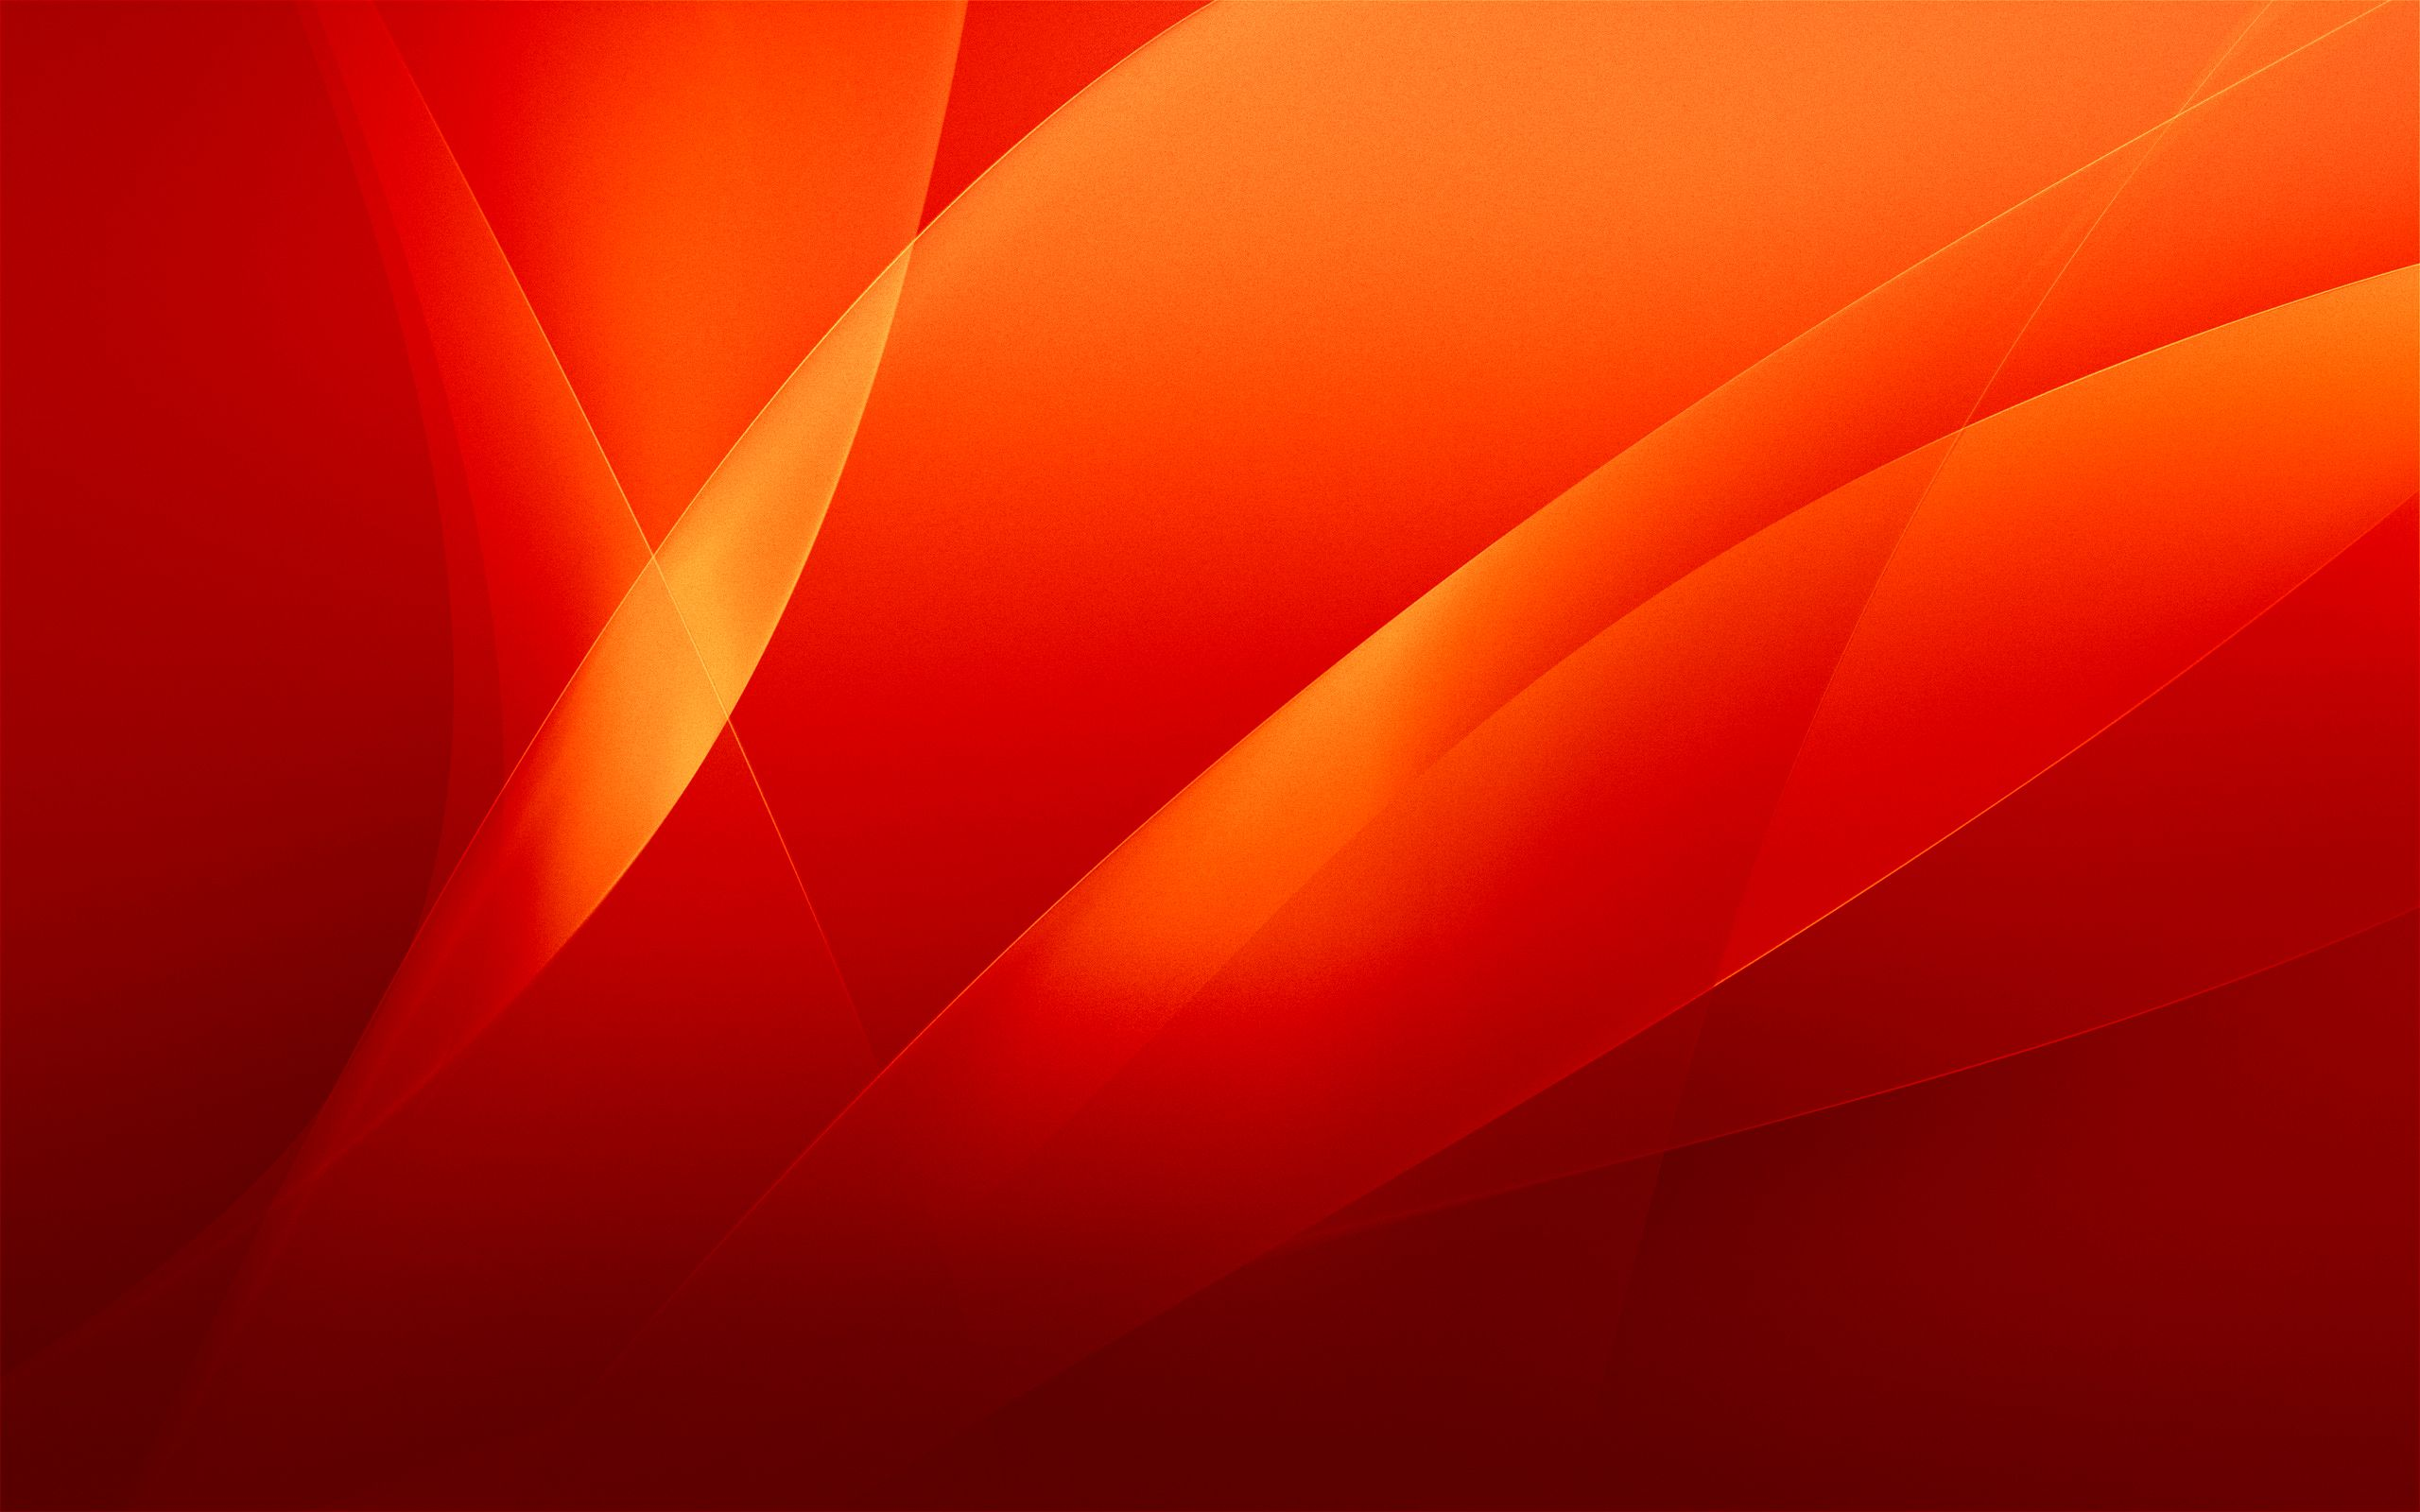 Red Background High Resolution Wallpaper In 2019 Red